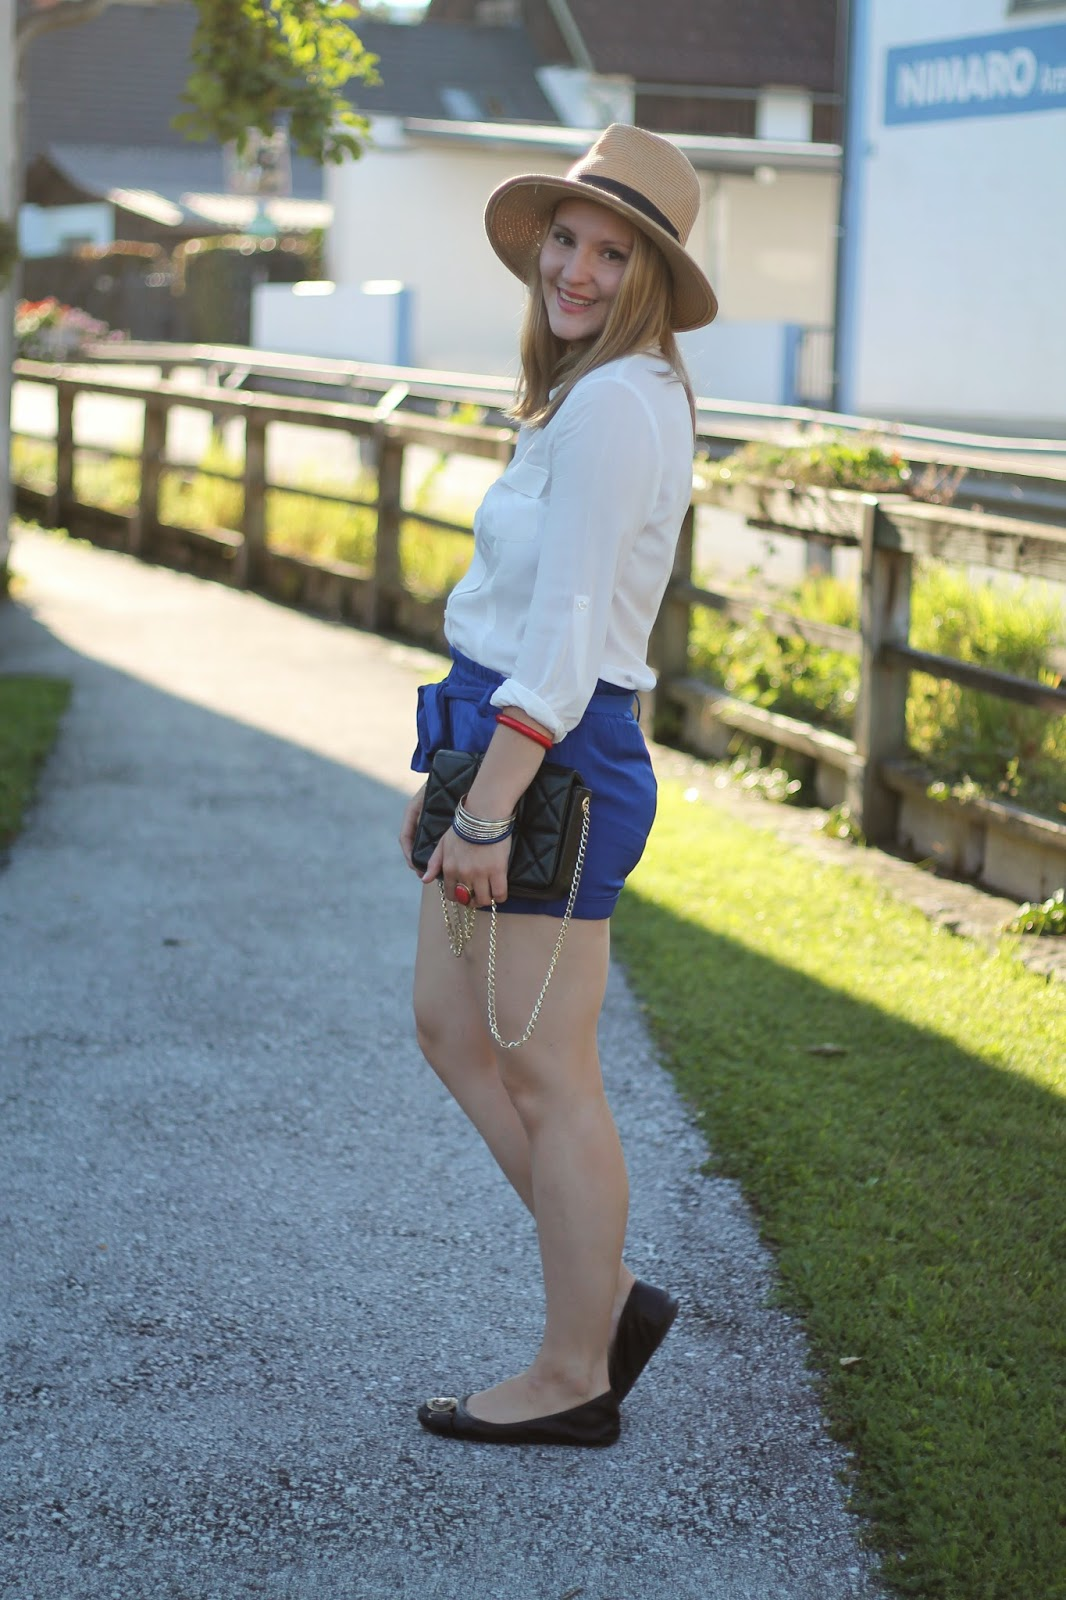 Fashionblogger Austria / Österreich / Deutsch / German / Kärnten / Carinthia / Klagenfurt / Köttmannsdorf / Spring Look / Classy / Edgy / Summer / Summer Style 2014 / Summer Look / Fashionista Look /   / Summer Look / Shorts blue New Yorker / White Blouse Orsay / Hat Forever 21 / Black Chain Cross Body Bag Zara / Vero Moda / Ring Ann Christin / Golden Statement Necklace I Am / Black Burberry Flats /